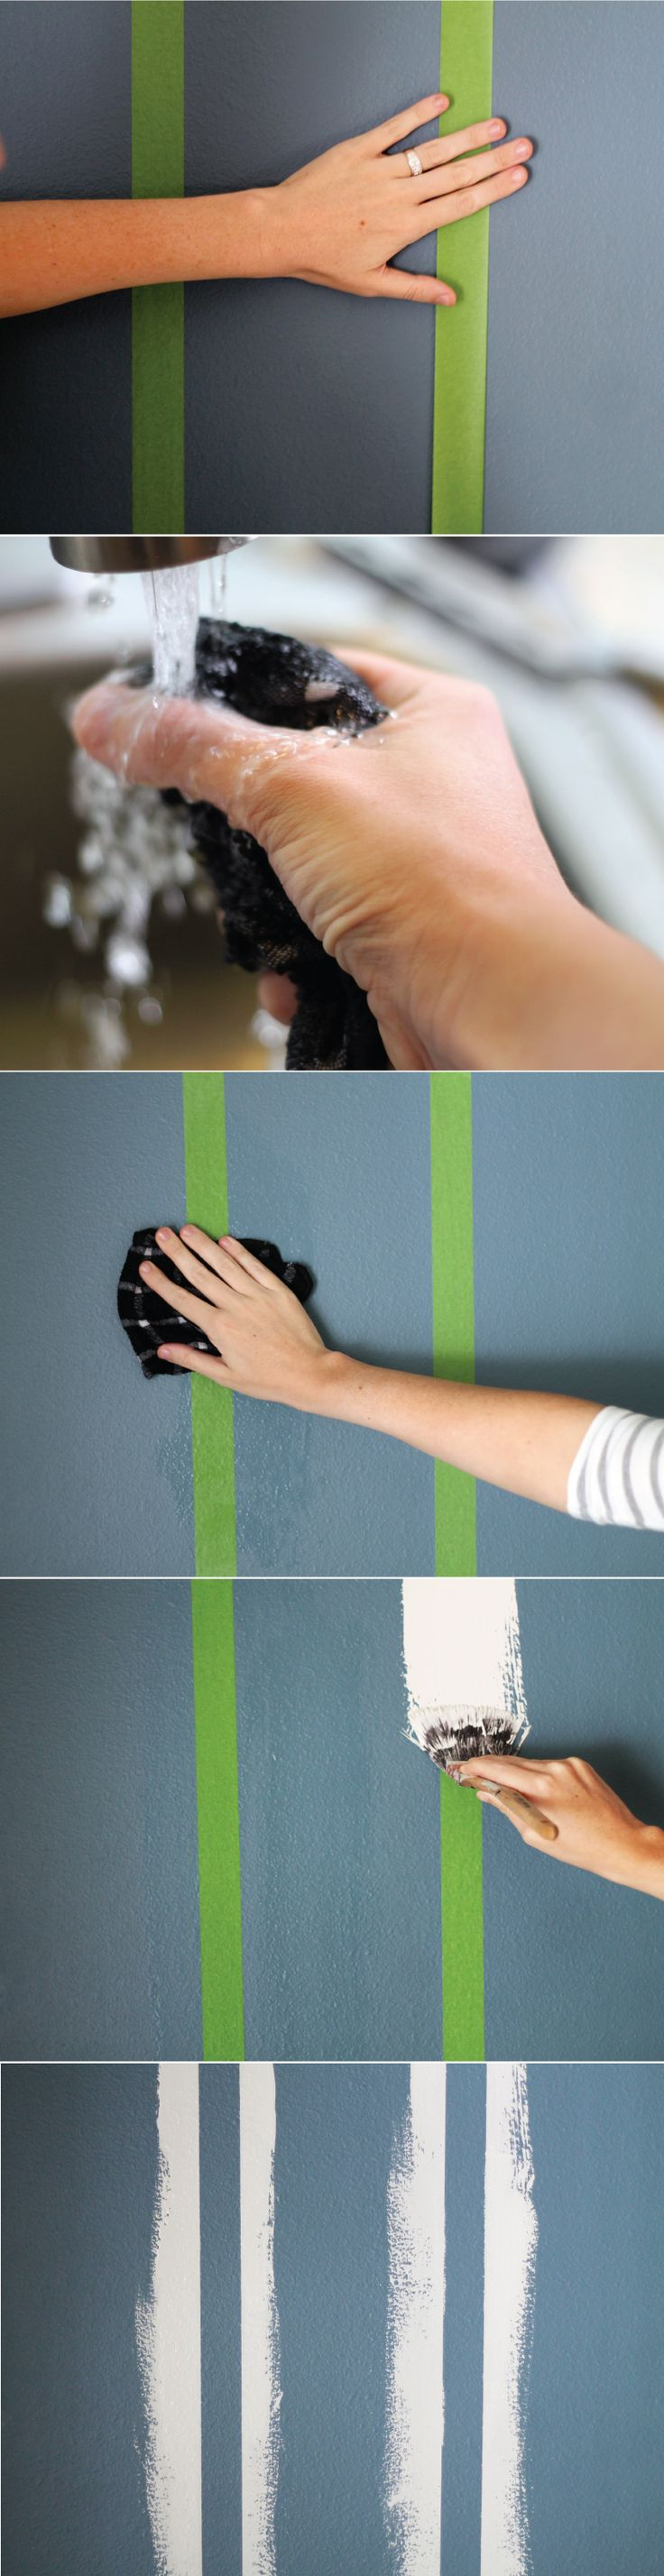 "Not a fan of taping, but good info here on how to make Frog Tape actually work in getting the ""crispest paint lines ever"""